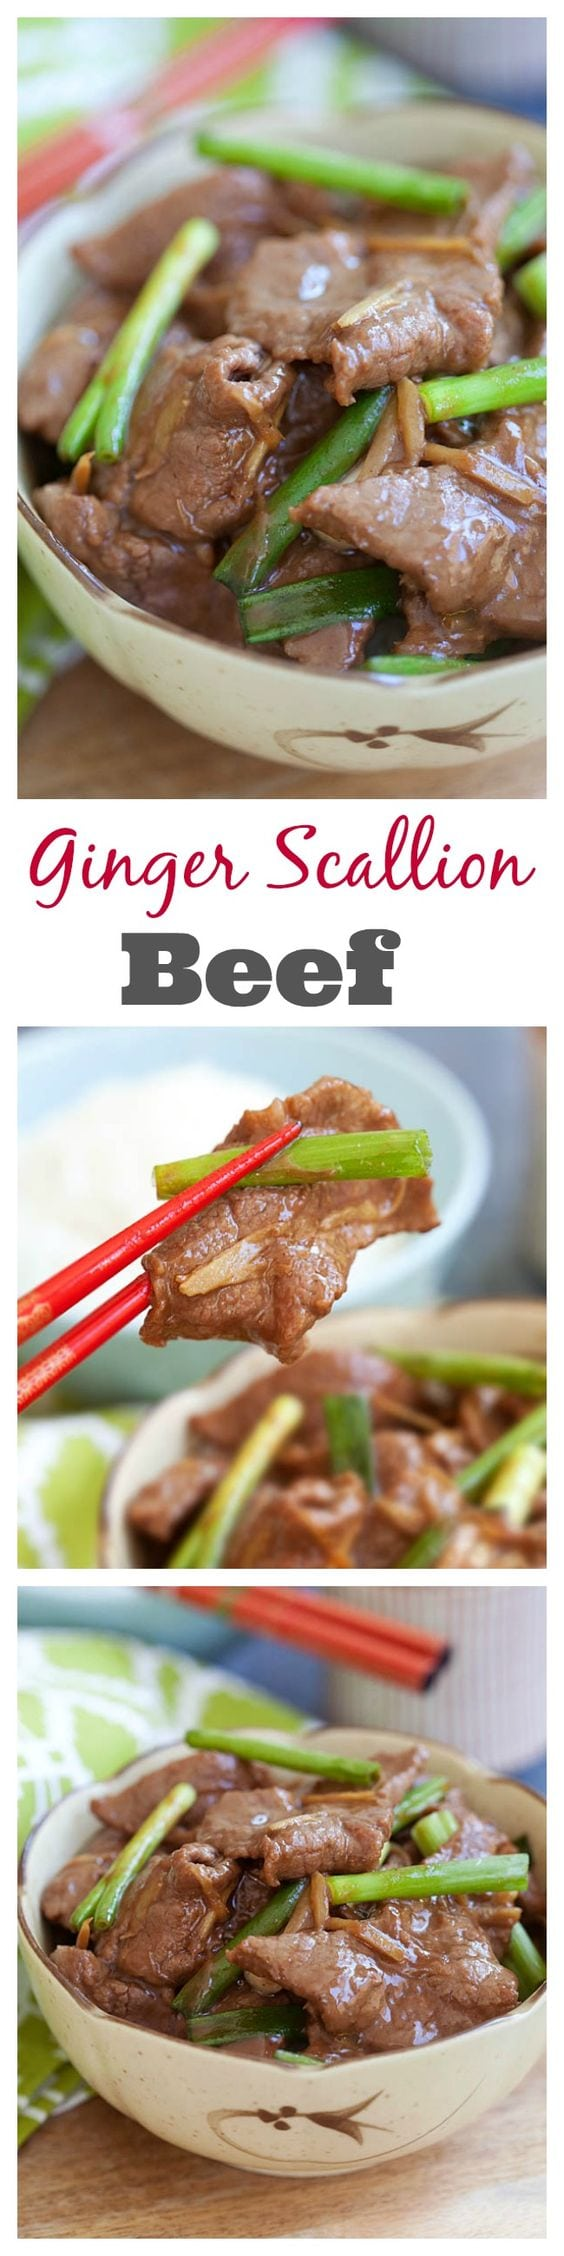 Ginger and Scallion Beef – Tender, juicy, and super delicious ginger and scallion beef recipe. Make ginger and scallion beef at home with simple ingredients and 15 minutes | rasamalaysia.com